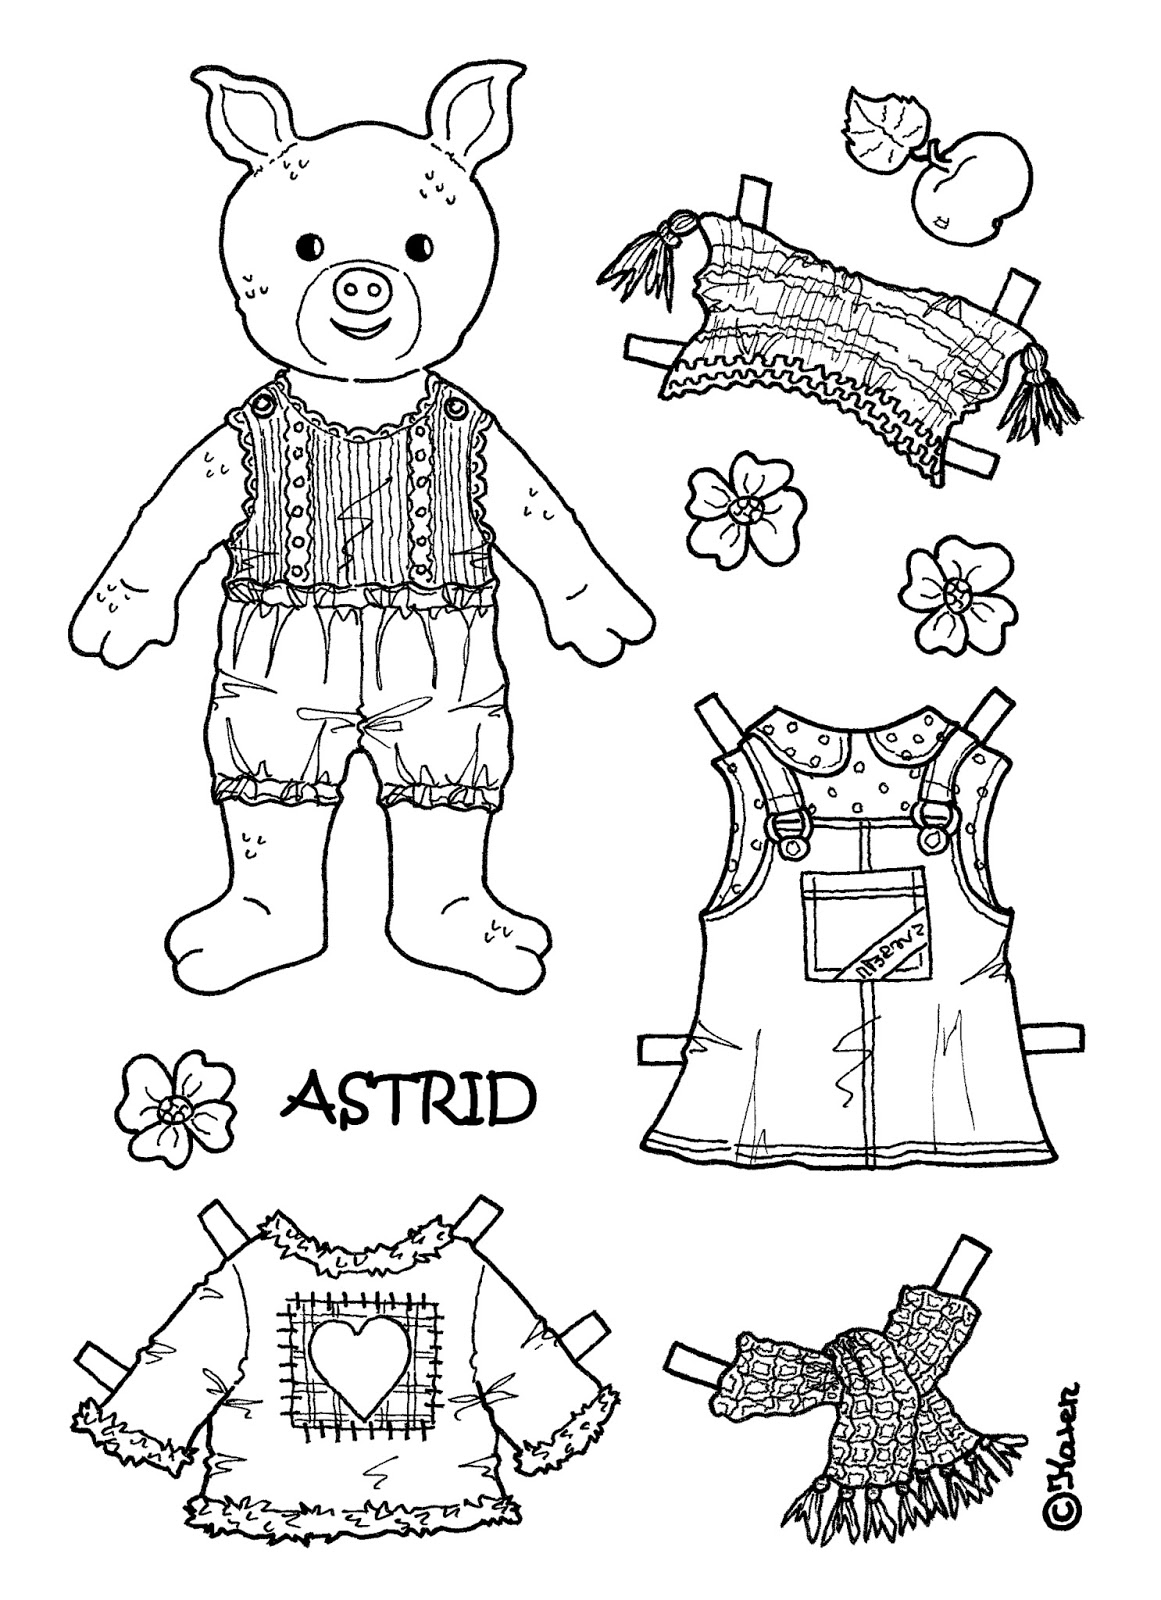 Karen`s Paper Dolls: Astrid 1-4 Paper Doll to Print and